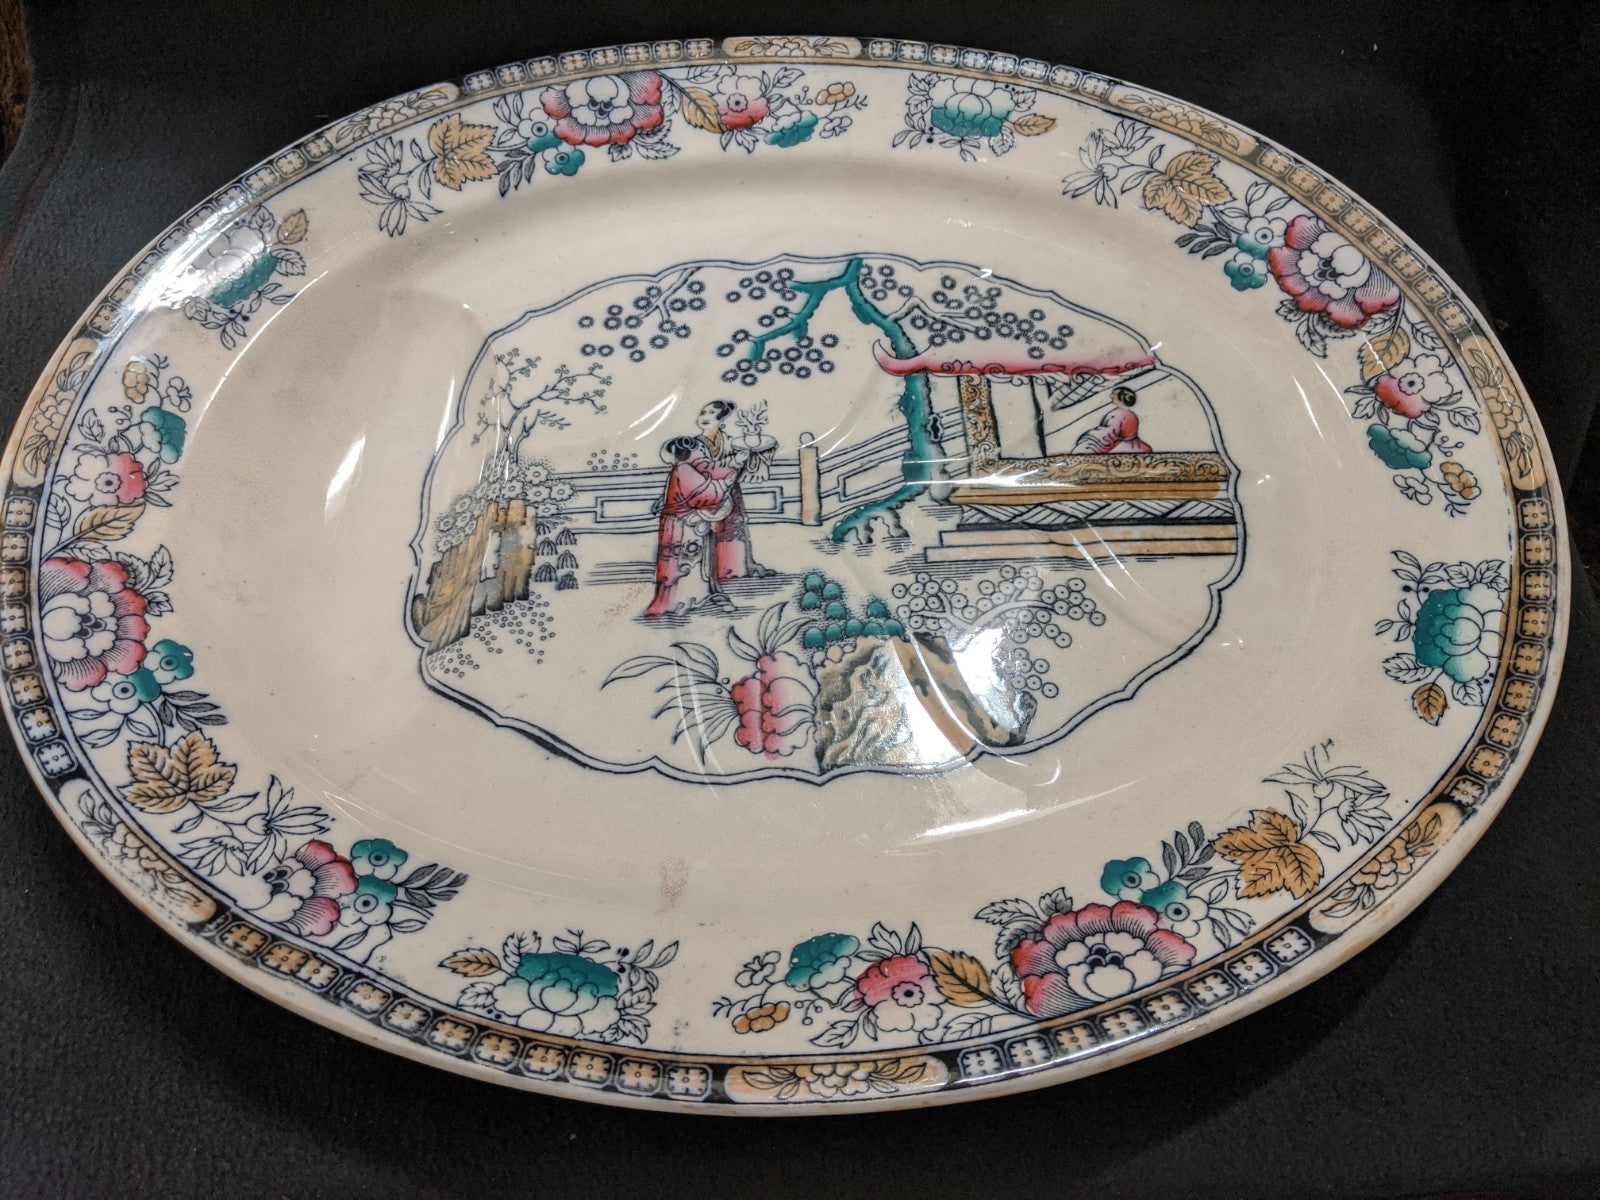 Ashworth Brothers Antique ceramic serving platter, pattern #16210